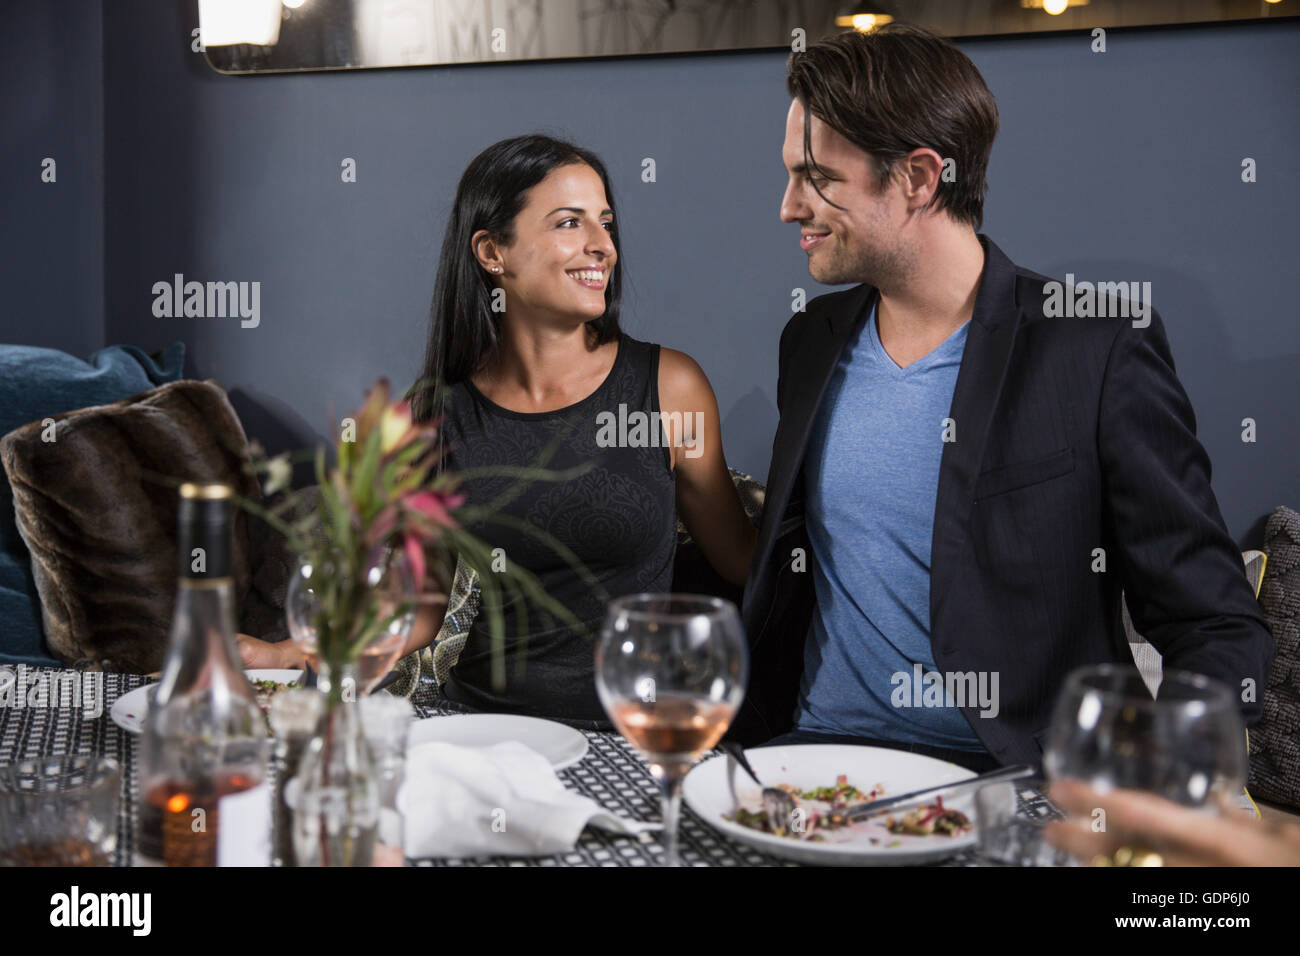 Couple on date dining in restaurant - Stock Image